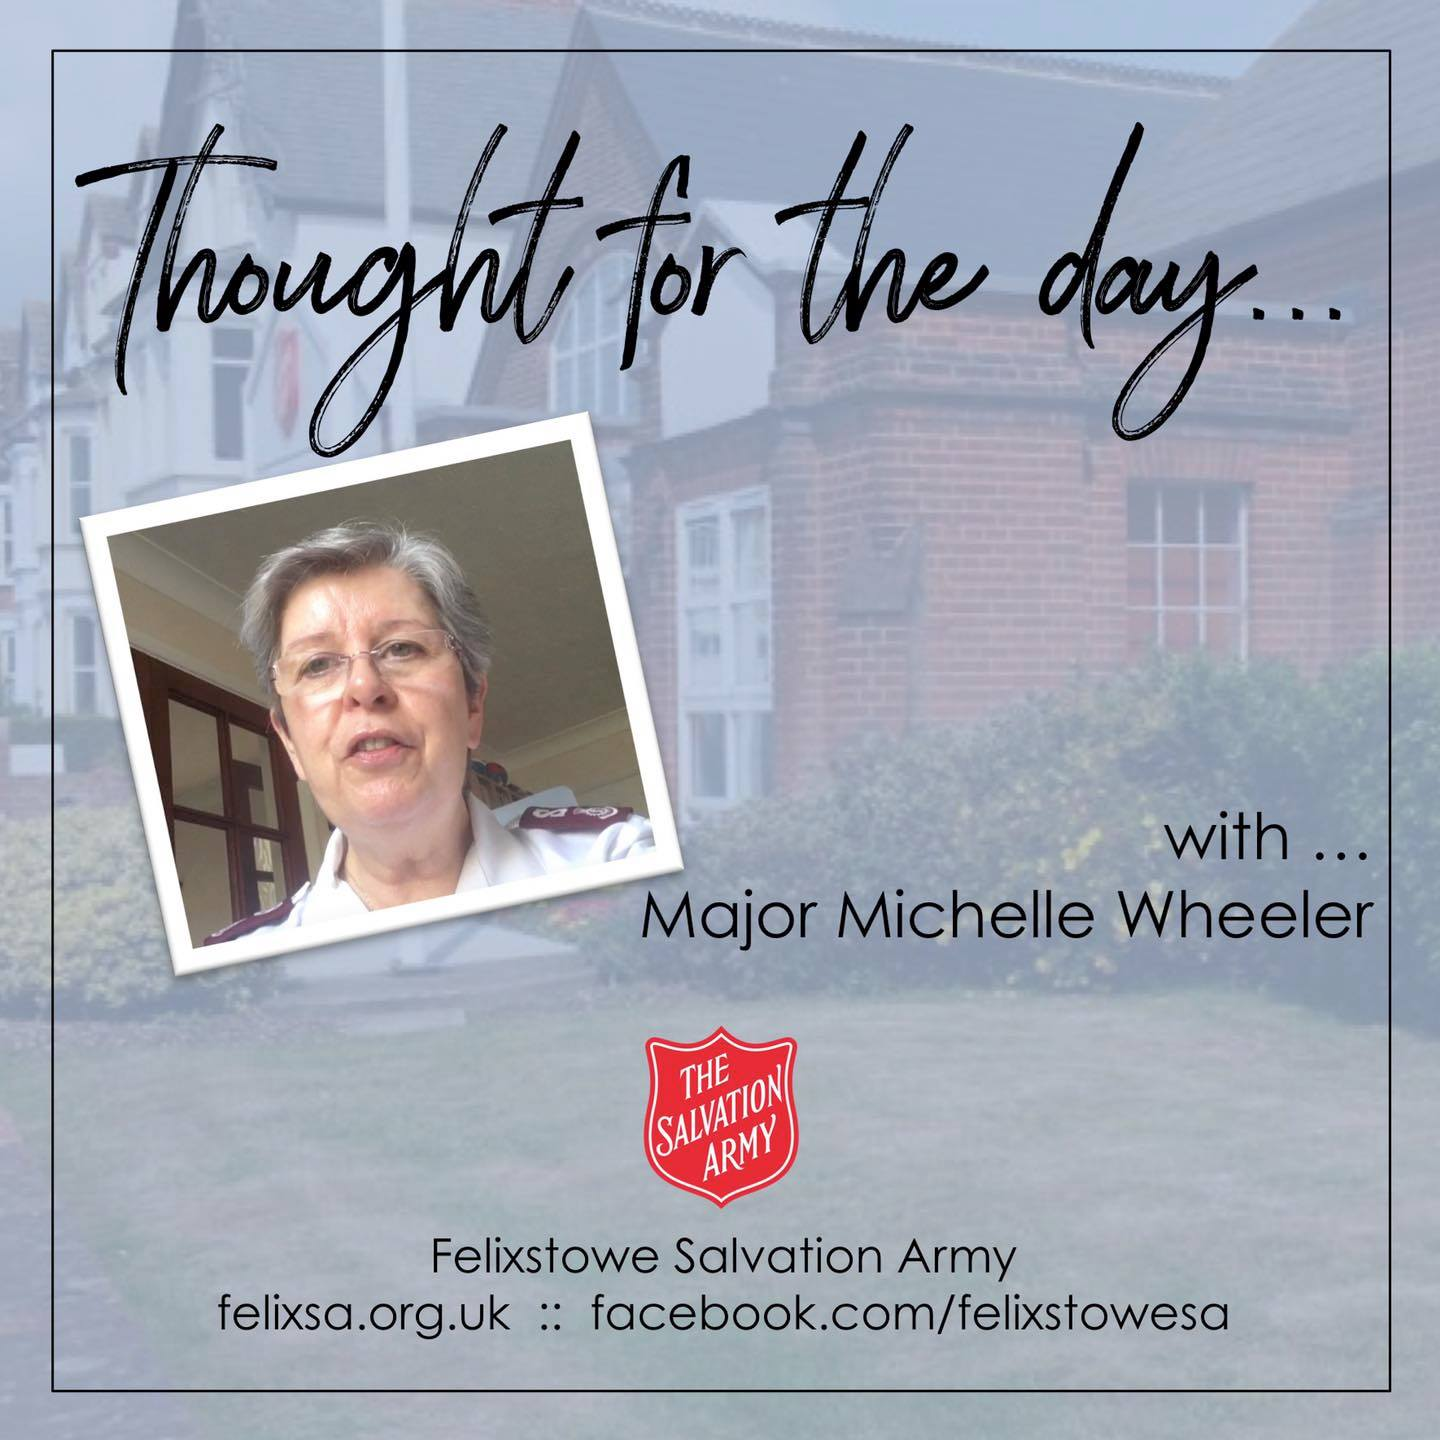 Thought for the Day with Major Michelle Wheeler